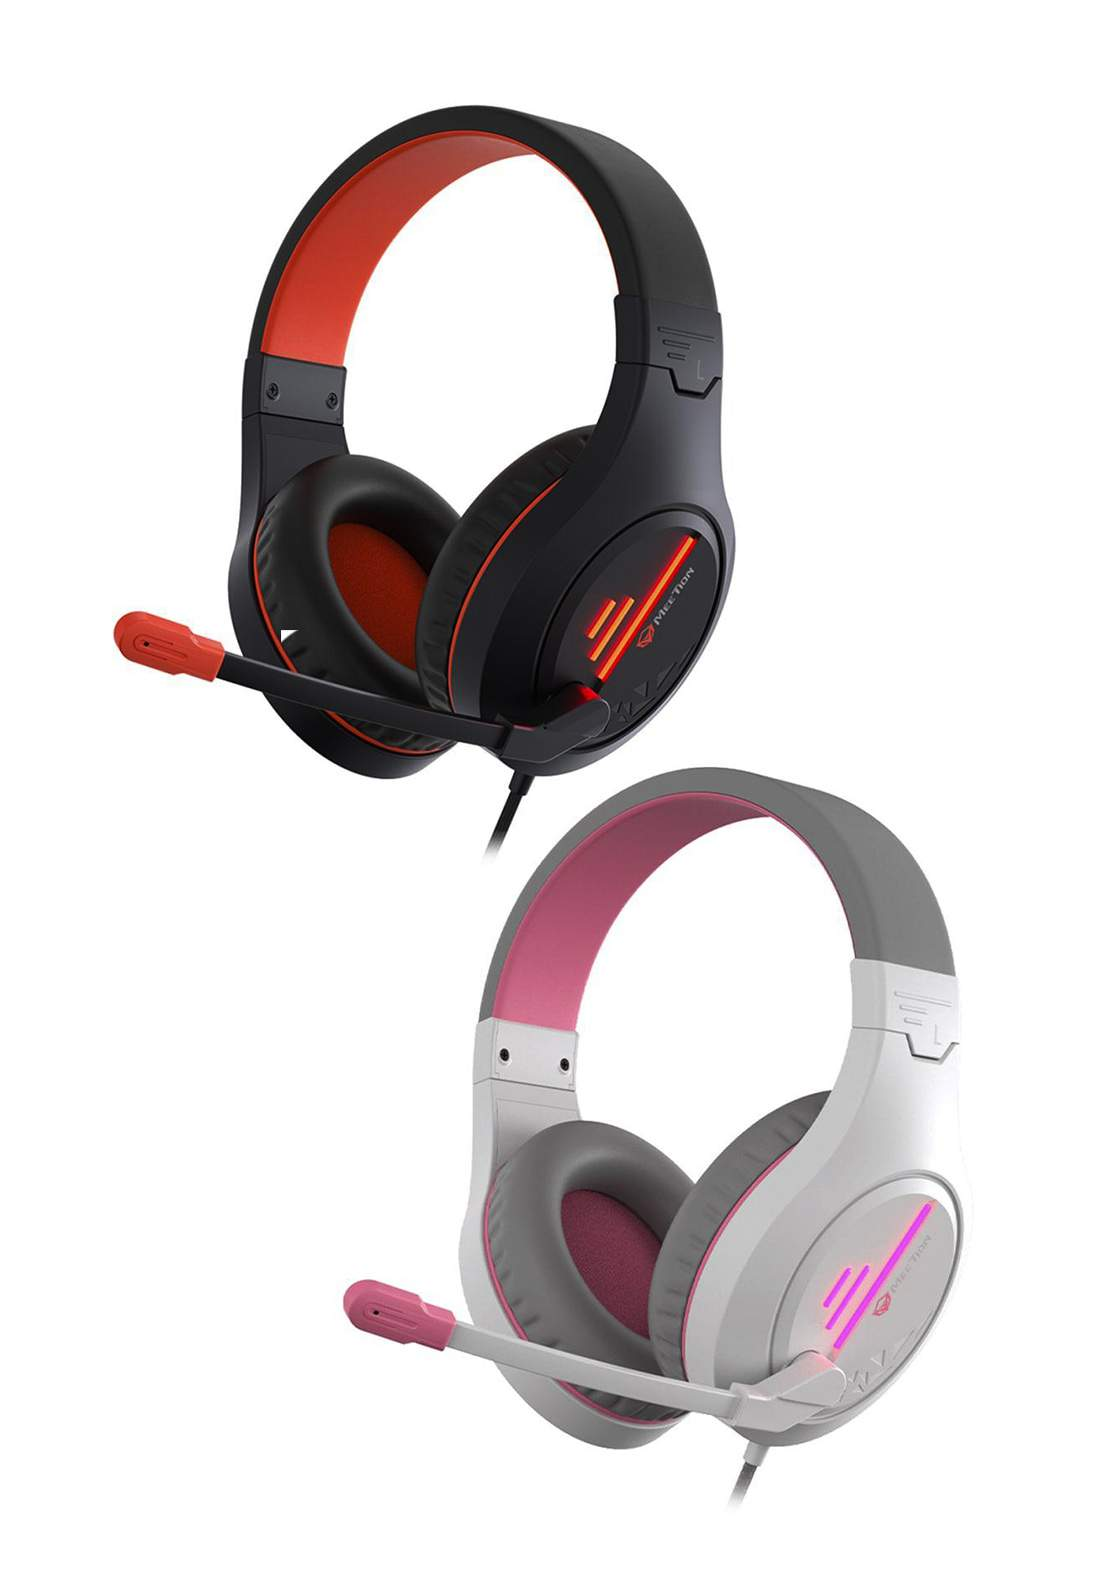 Meetion MT-HP021 Stereo Gaming Headset with Mic سماعة رأس